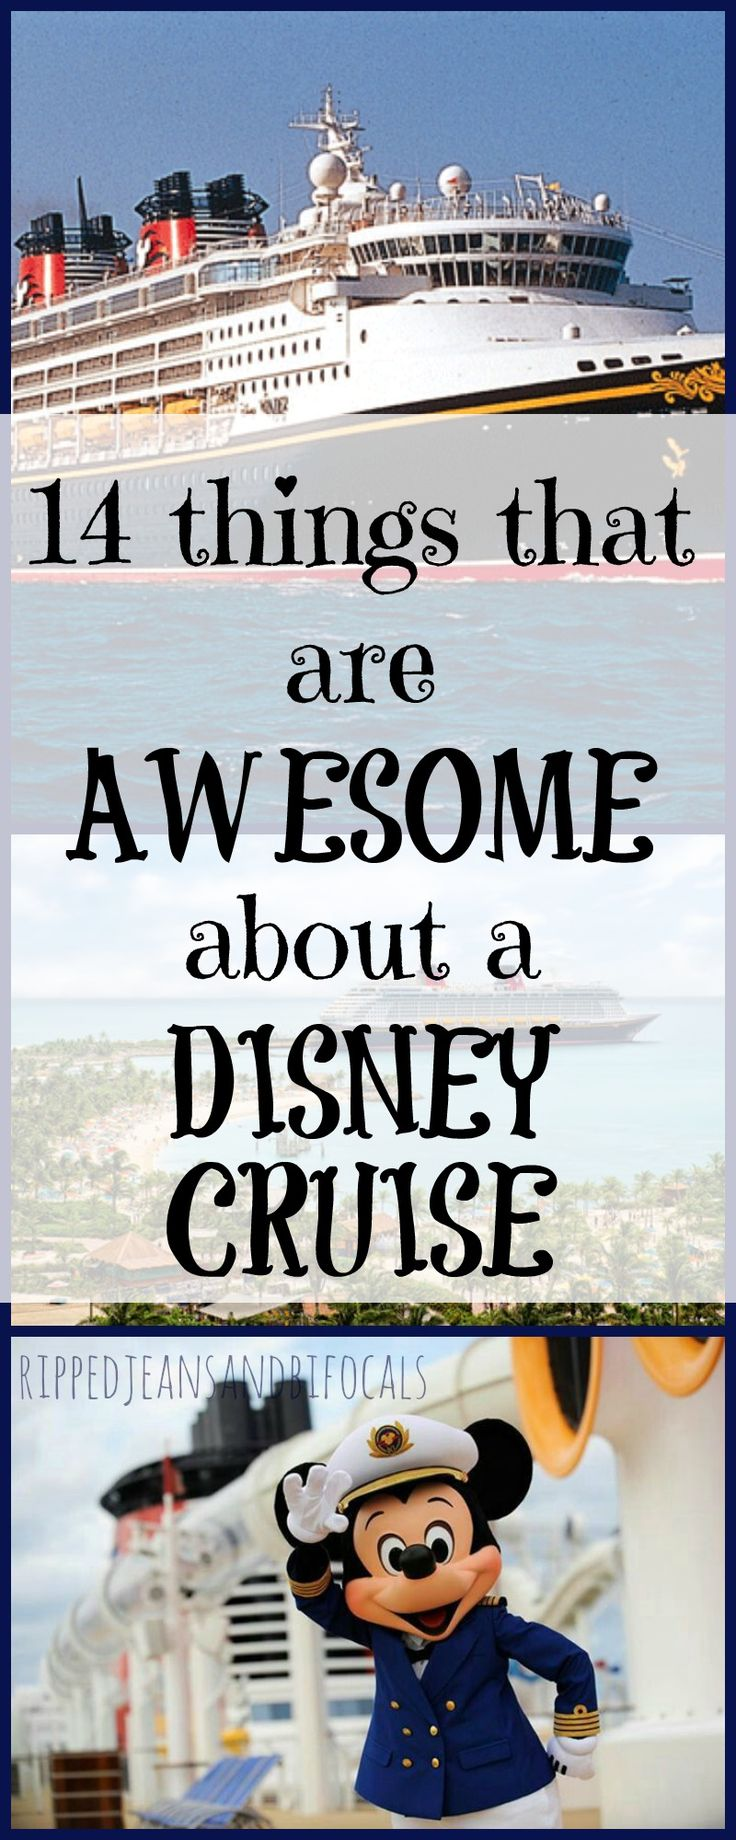 Yes, we all know Disney Cruises are awesome but do you know just HOW awesome?  |Disney Cruise|Disney Wonder|Disney Vacation|Family Vacation|Disney Cruise Tips|Disney Vacation Tips|Disney Cruise Ideas|Family Cruise Ideas|Bahamas|Disney|Disney Wonder Cruise|Cruises for Children|Best Cruises for Children|Best Cruises for Kids|Disney Moms|Disney Blogger|Disney Social Media|Mickey Mouse|Castaway Cay|Castaway  Cay ideas|Castaway Cay Tips|